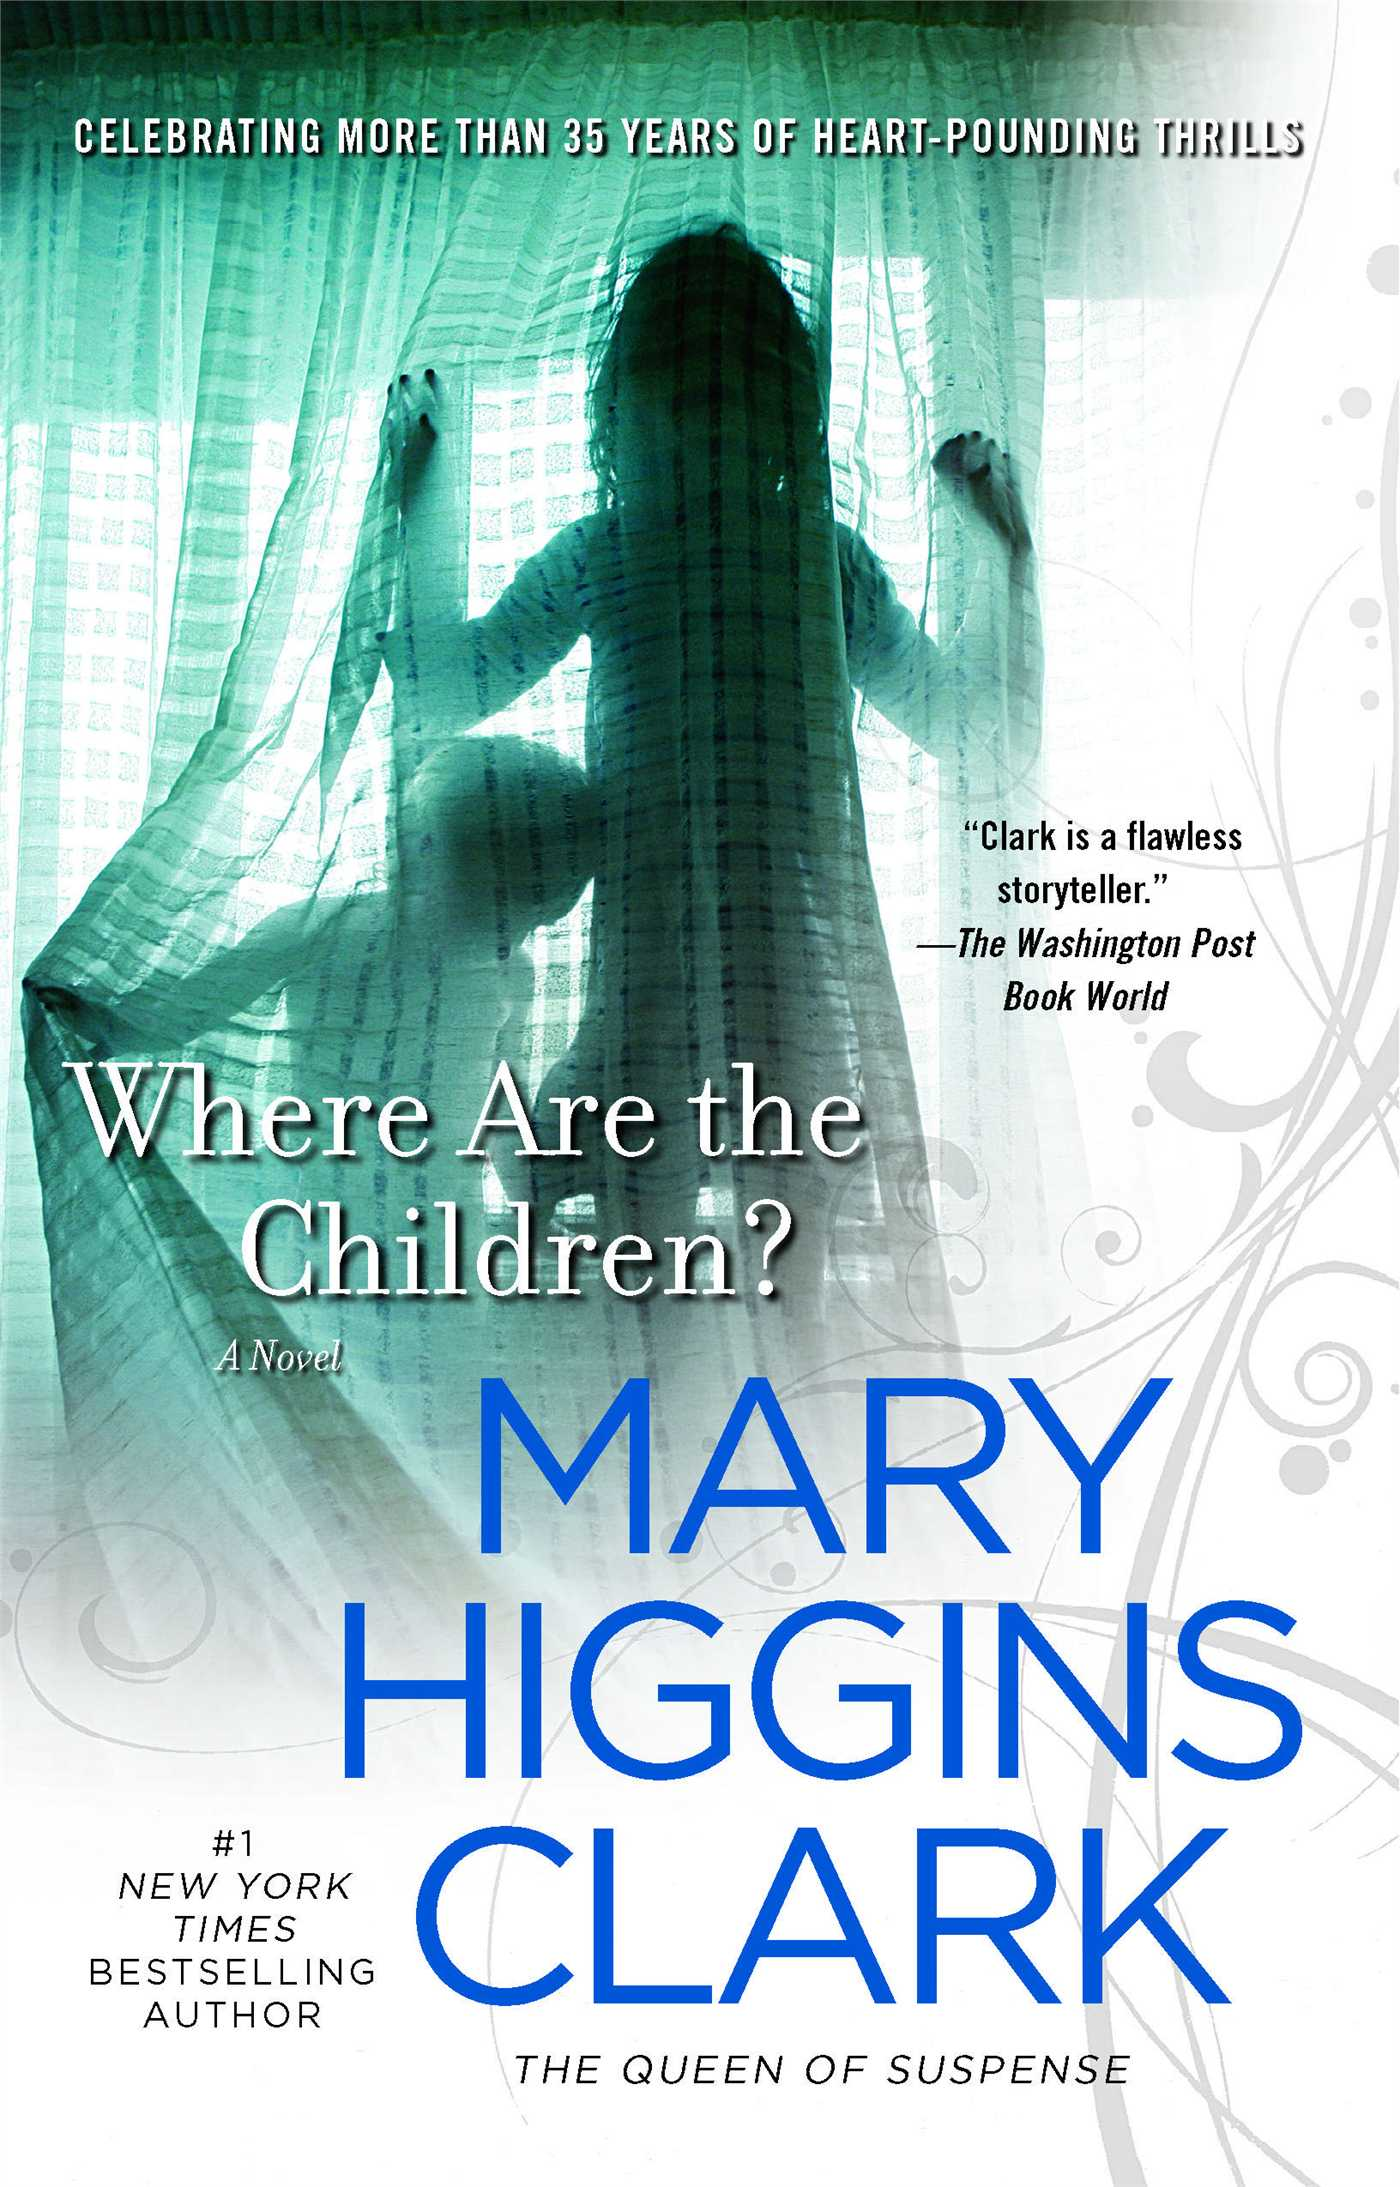 10 Mary Higgins Clark Suspense Novels You Cannot Miss | Off